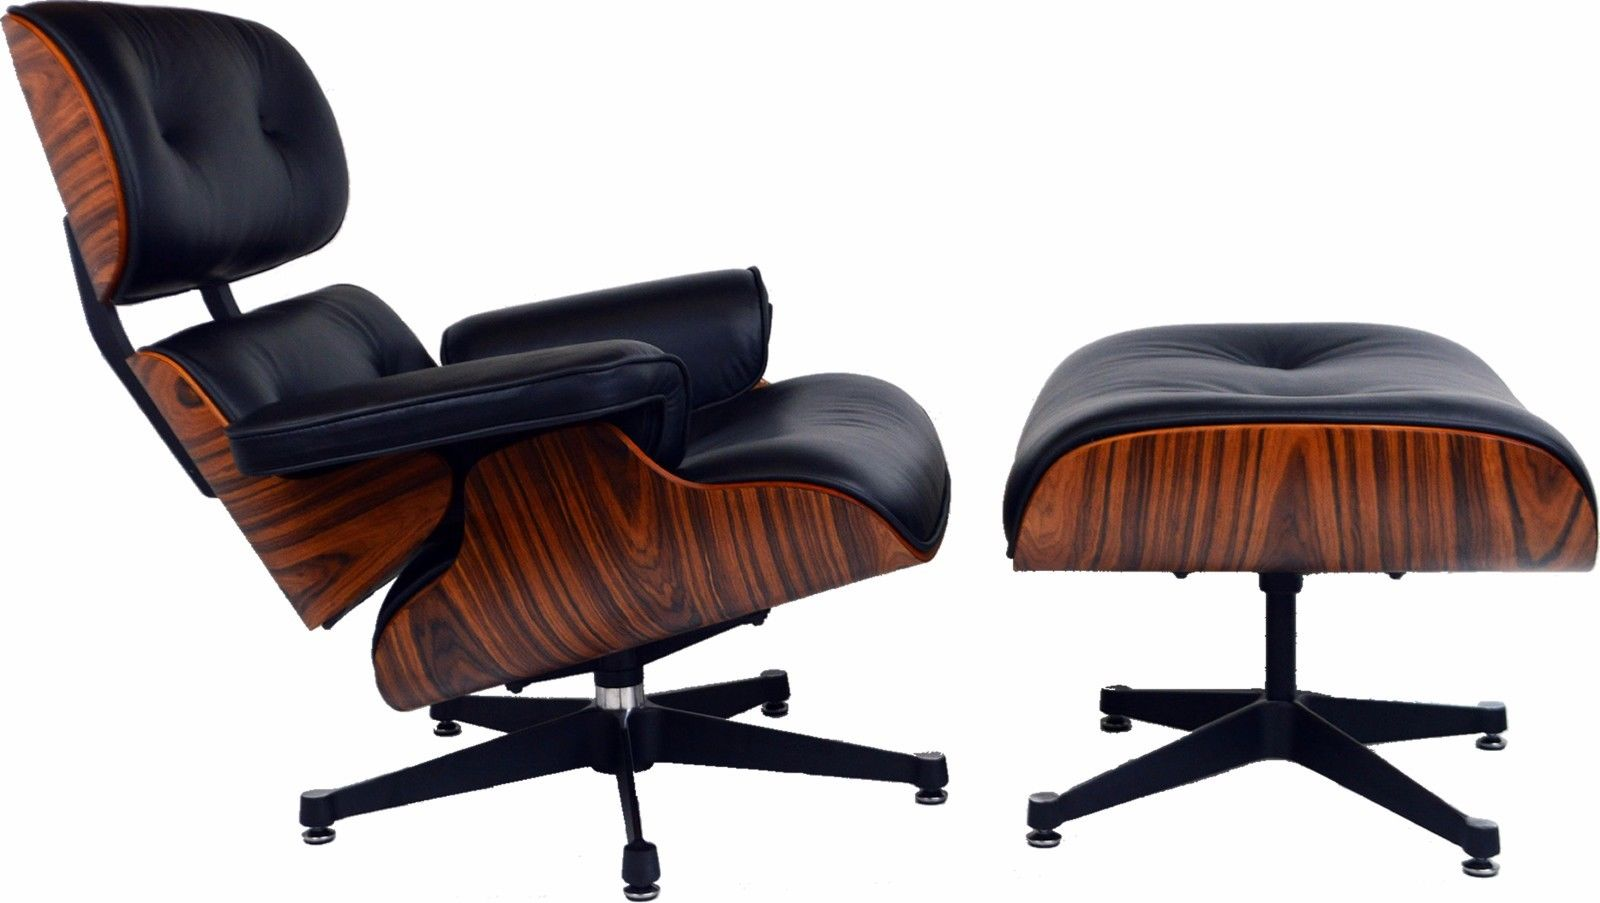 Chair Eames Charles Eames Lounge Chair Light Rosewood Black Leather - Charles Eames